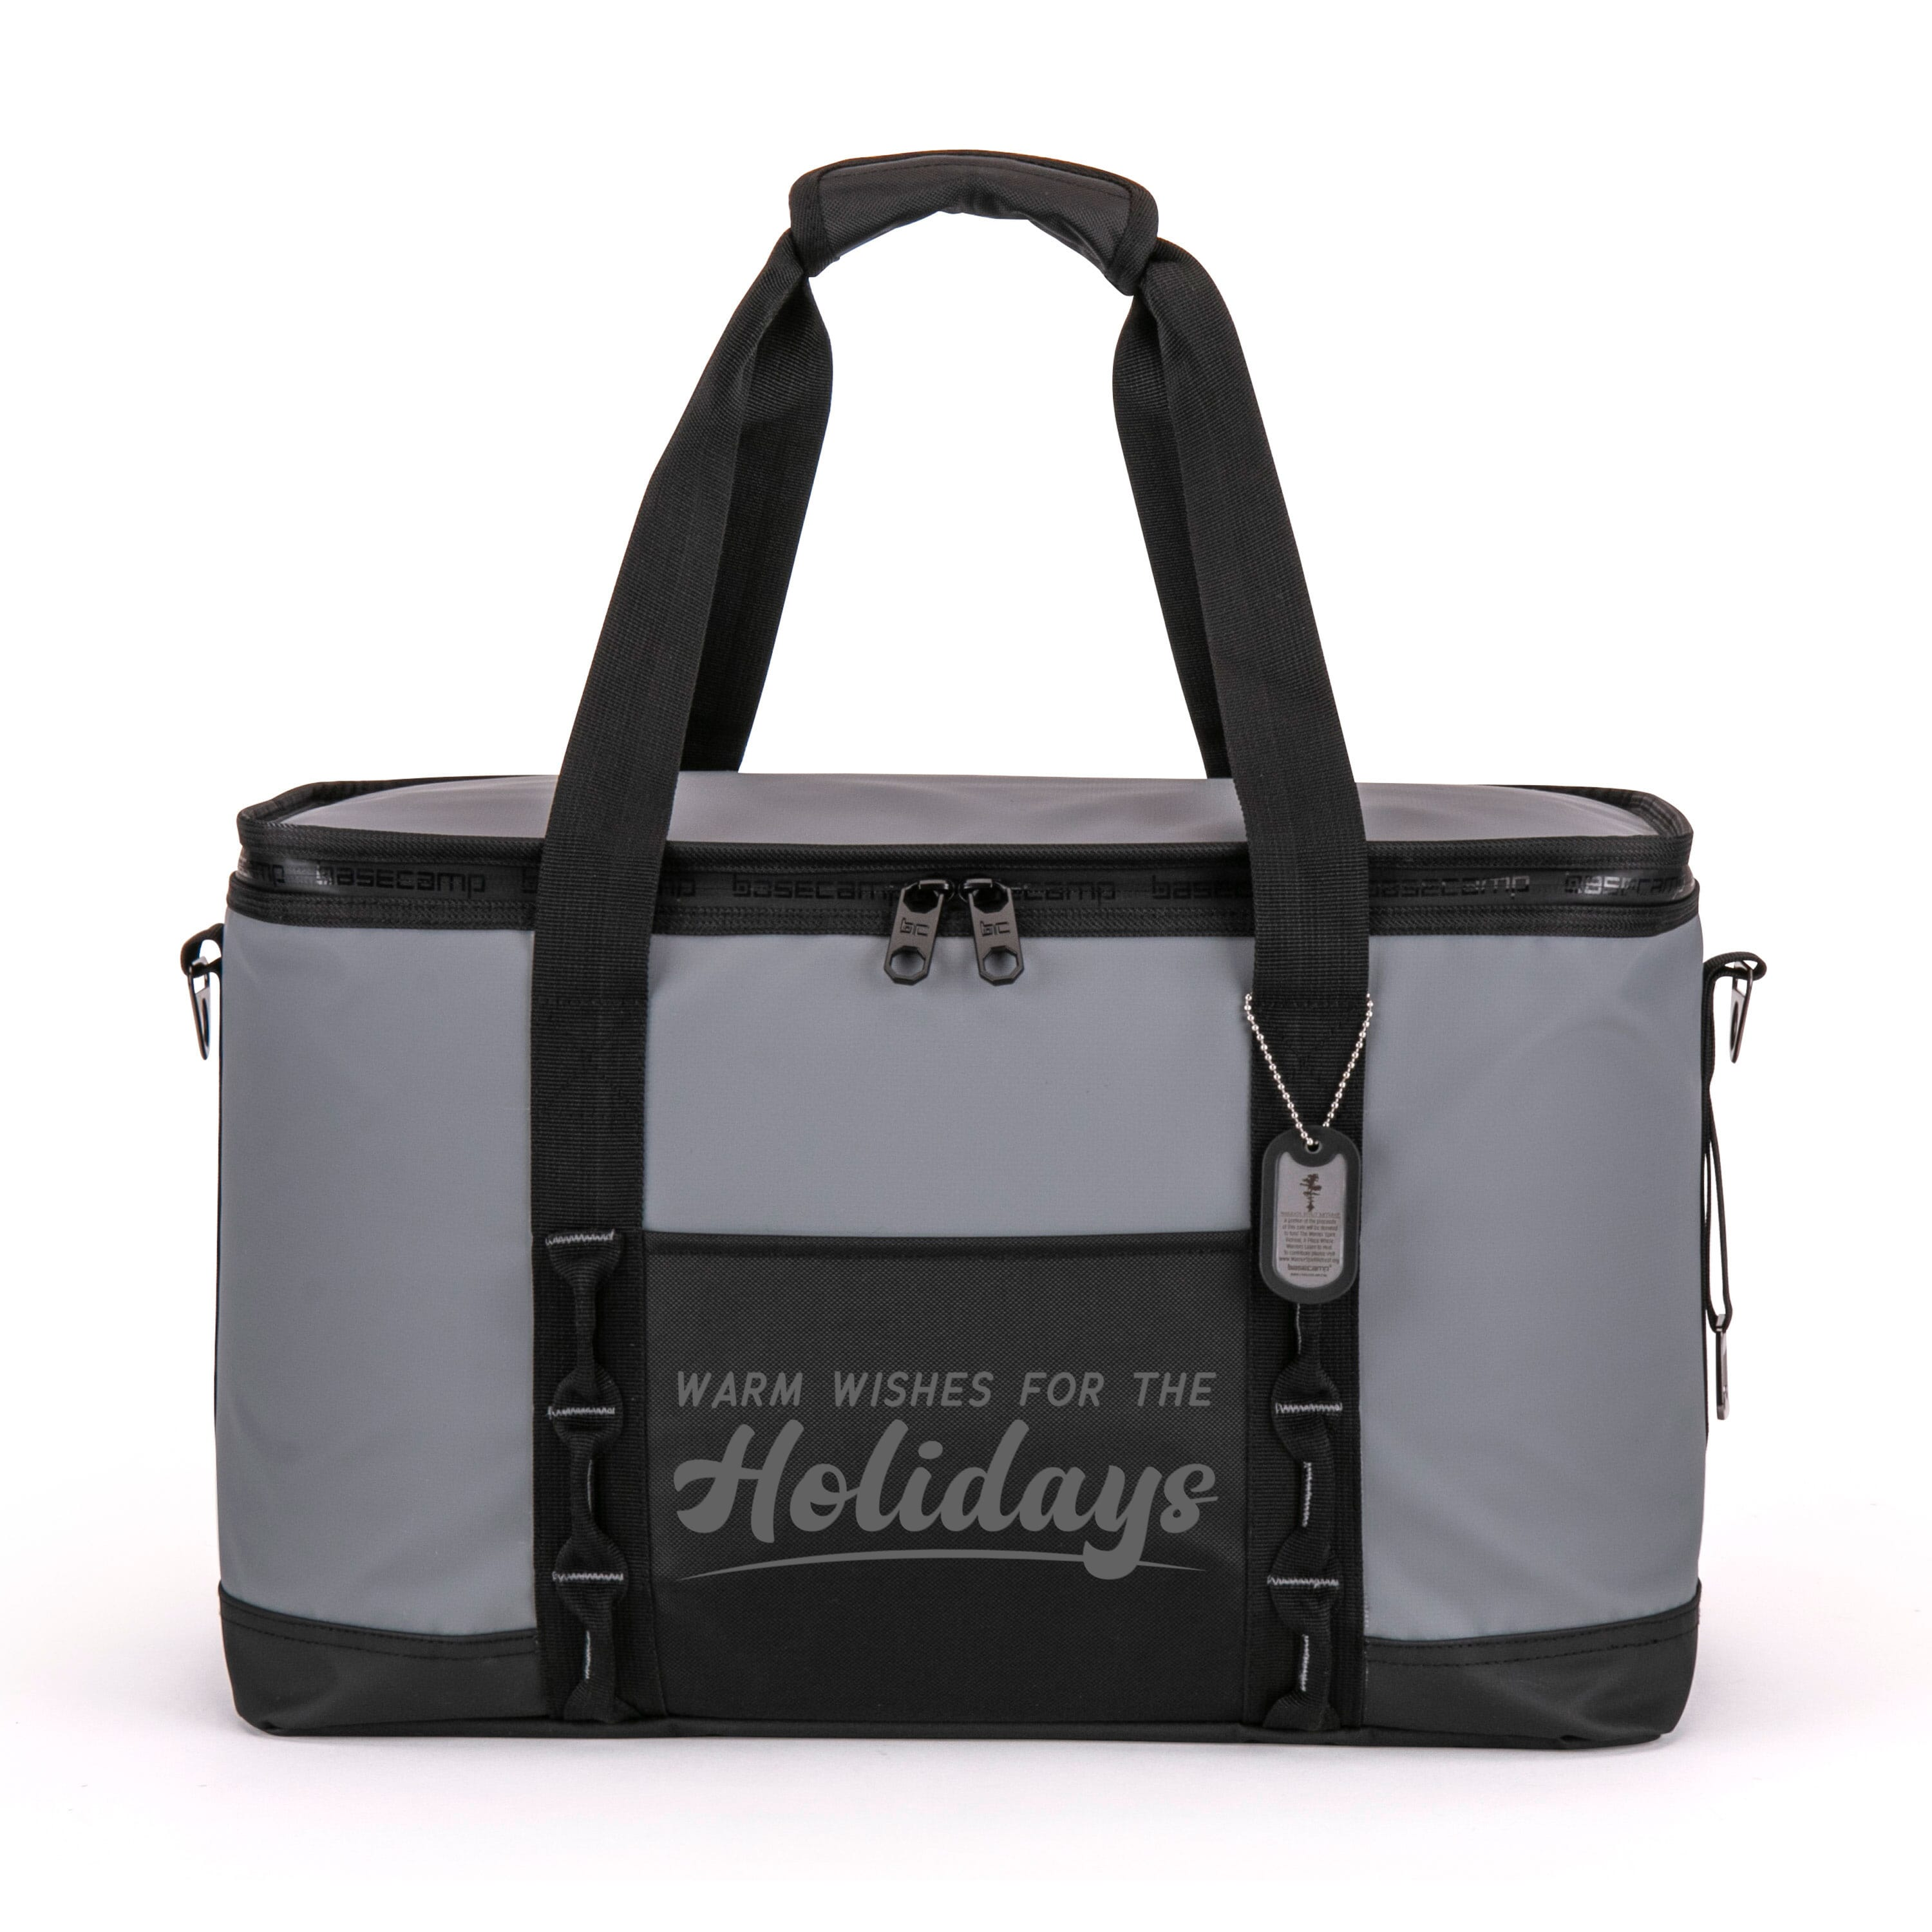 Basecamp cooler tote with holiday imprint